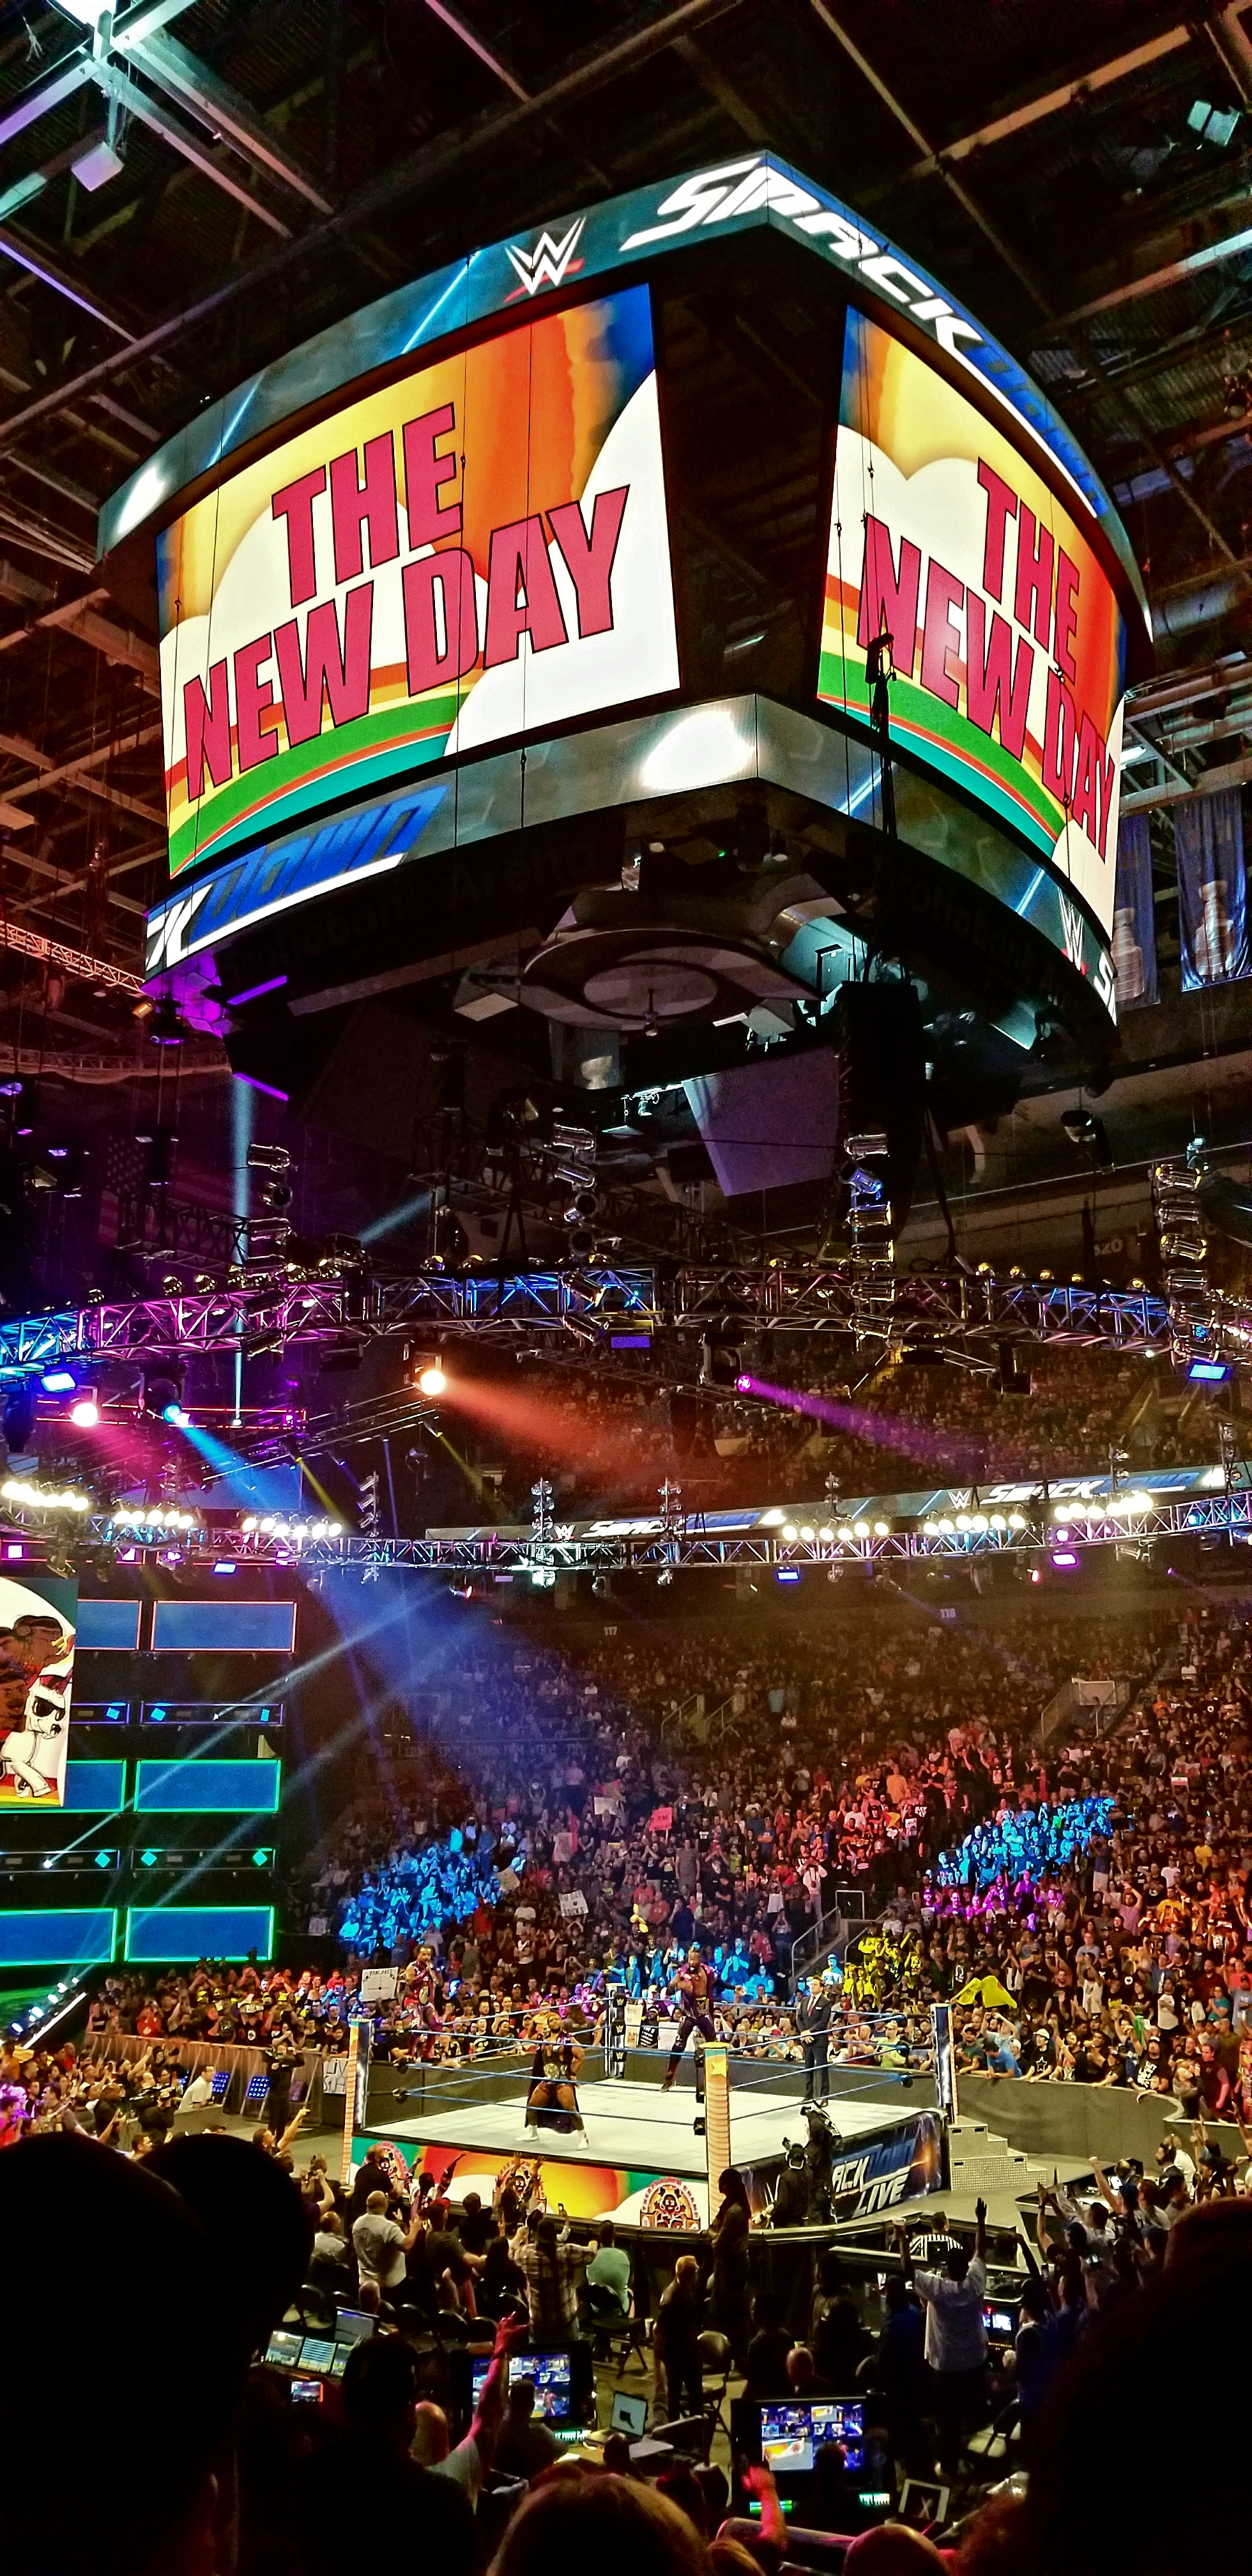 WWE Wrestling Event, The Ring